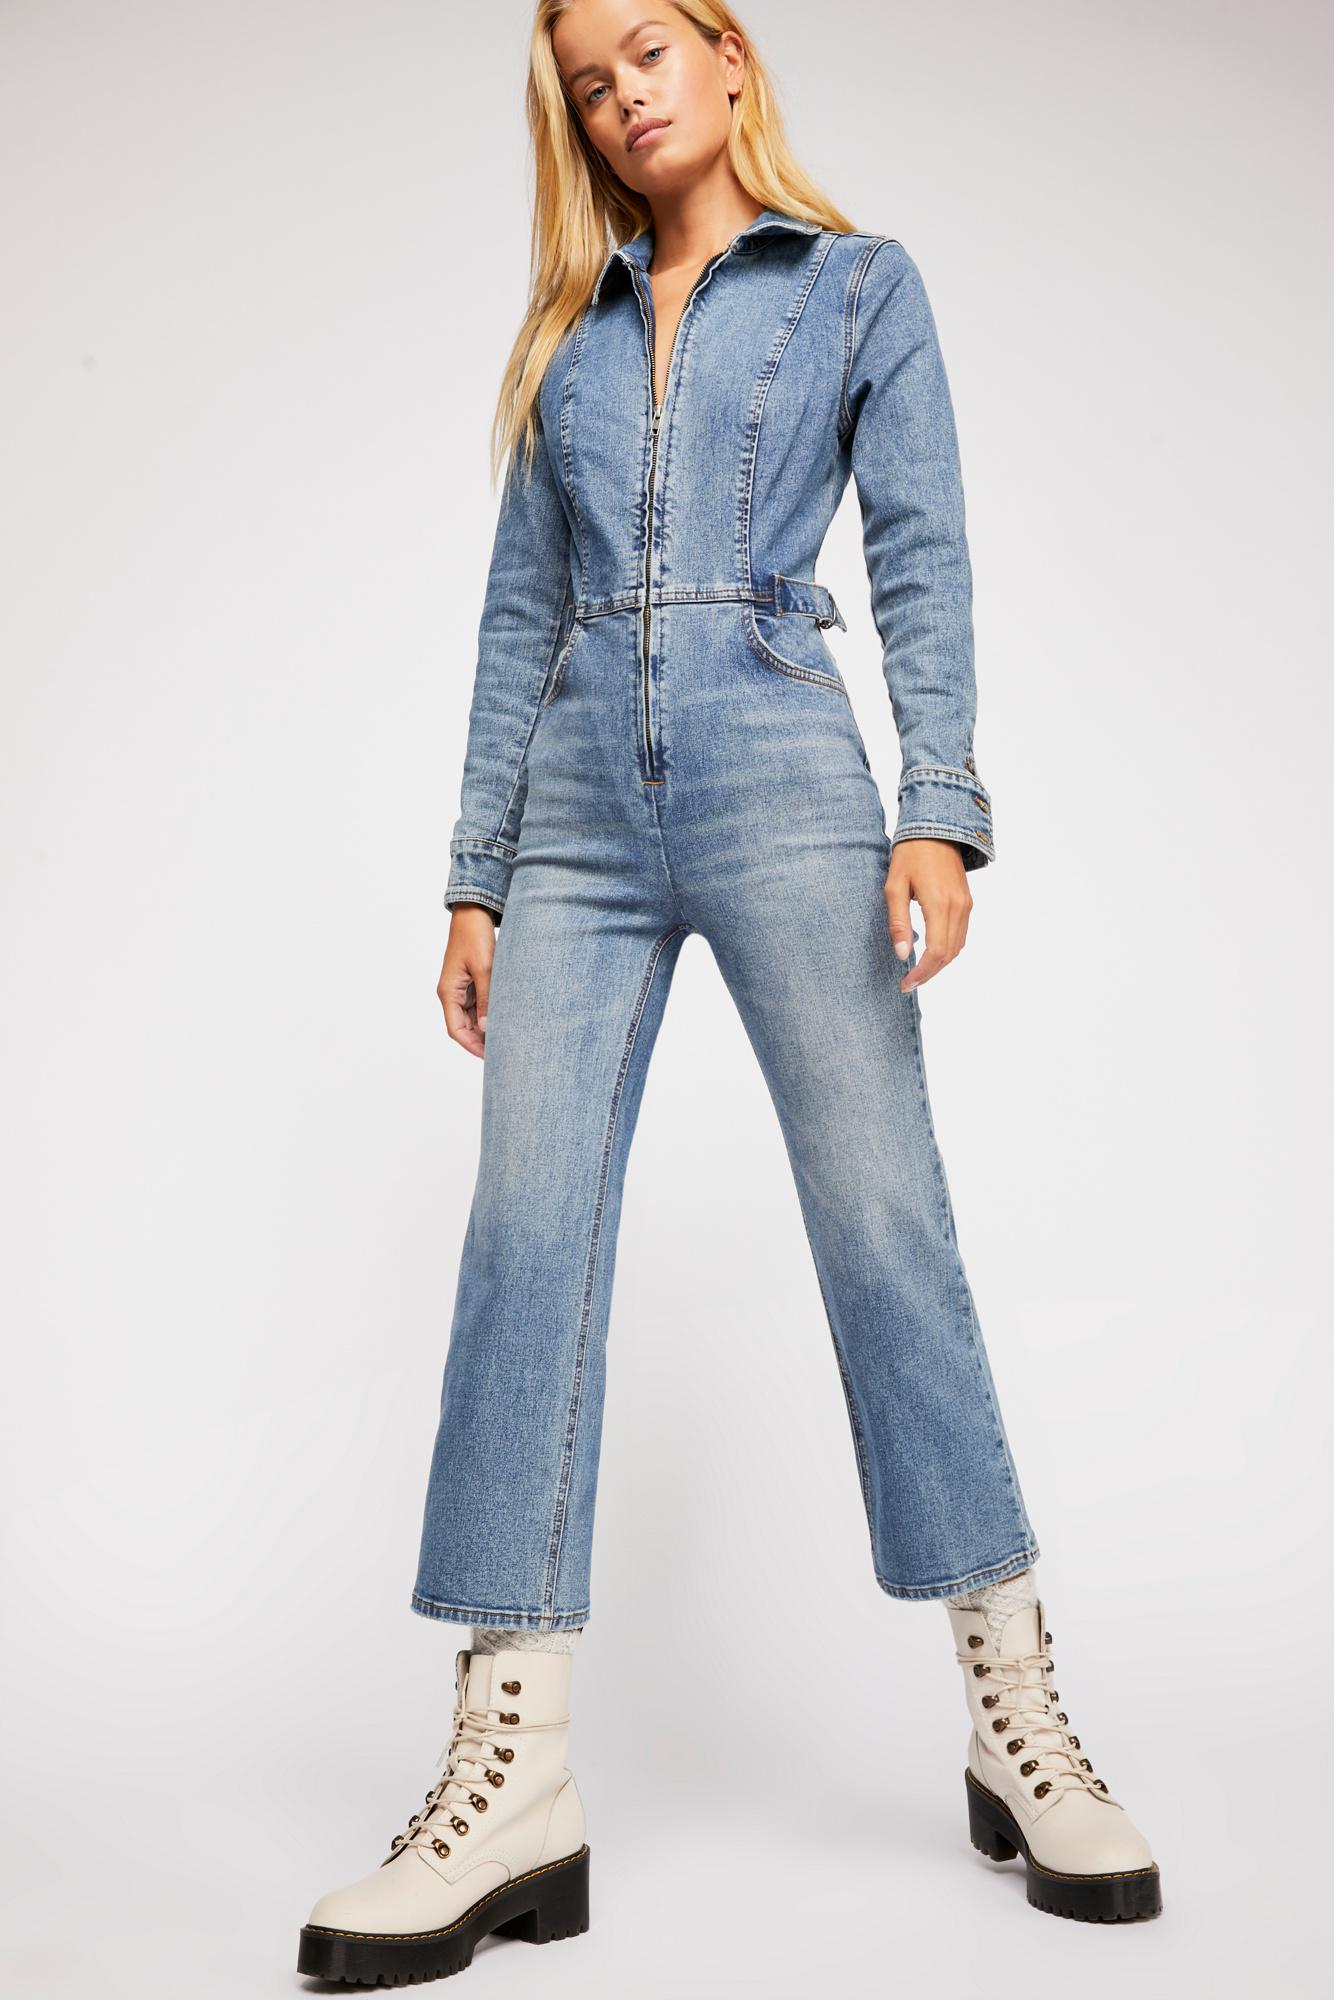 0d25ad0d2f2 Lyst - Free People Take Me Out Flare Jumpsuit in Blue